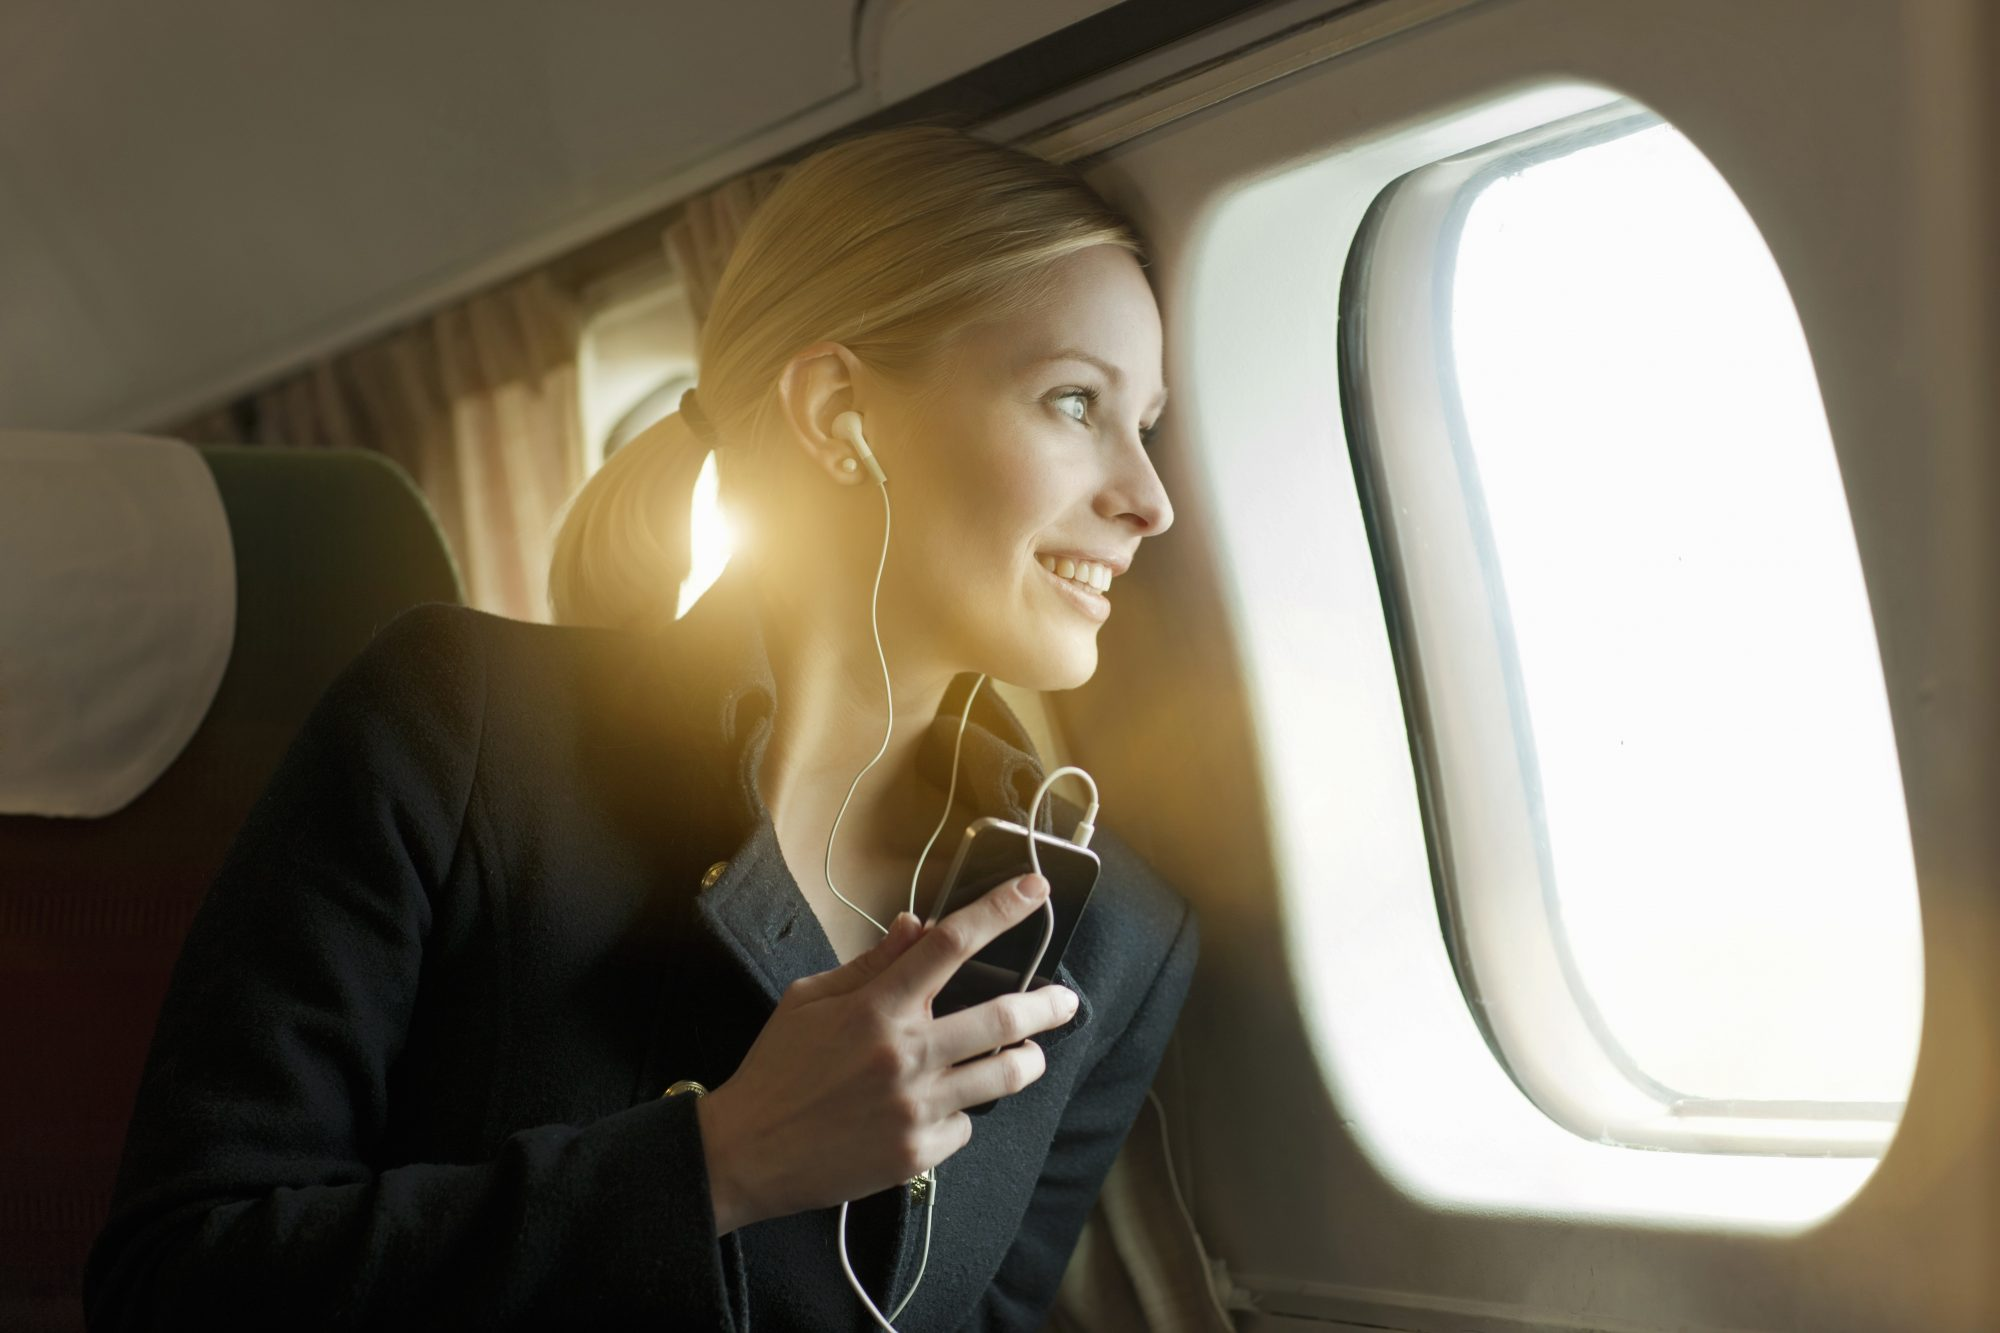 woman-headphones-traveling-podcasts-airplane-music